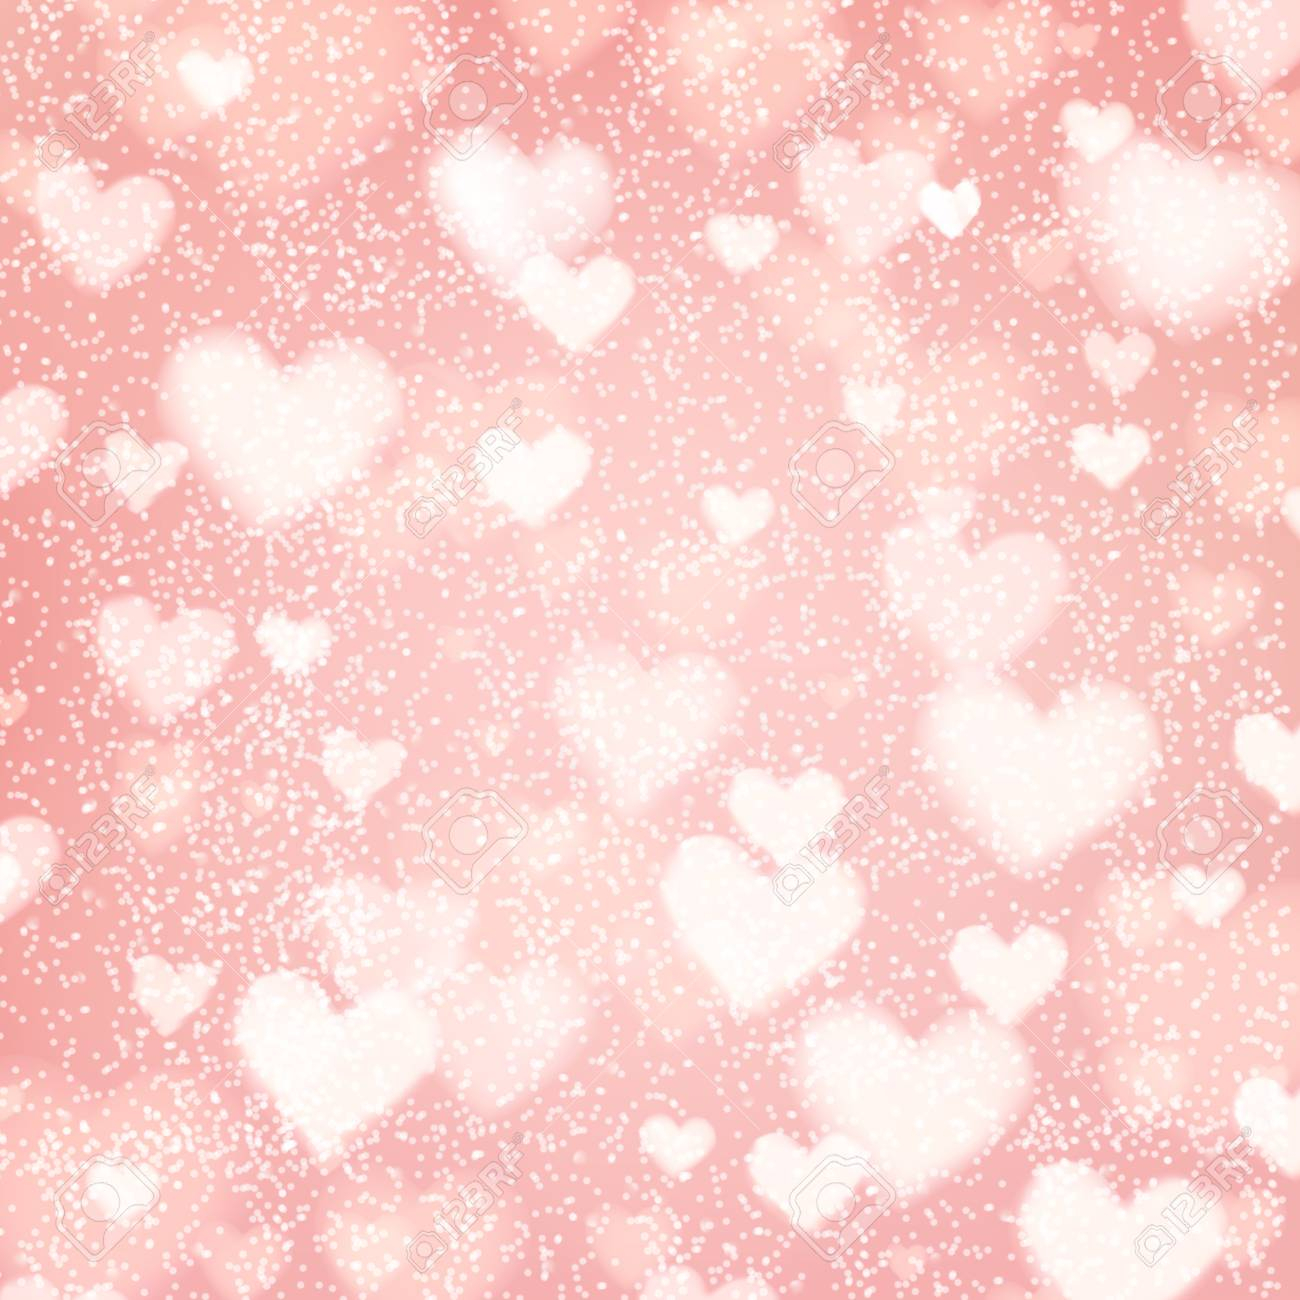 photo stock vector abstract romantic pink background with hearts and bokeh lights st valentines day wallpaper blurred g